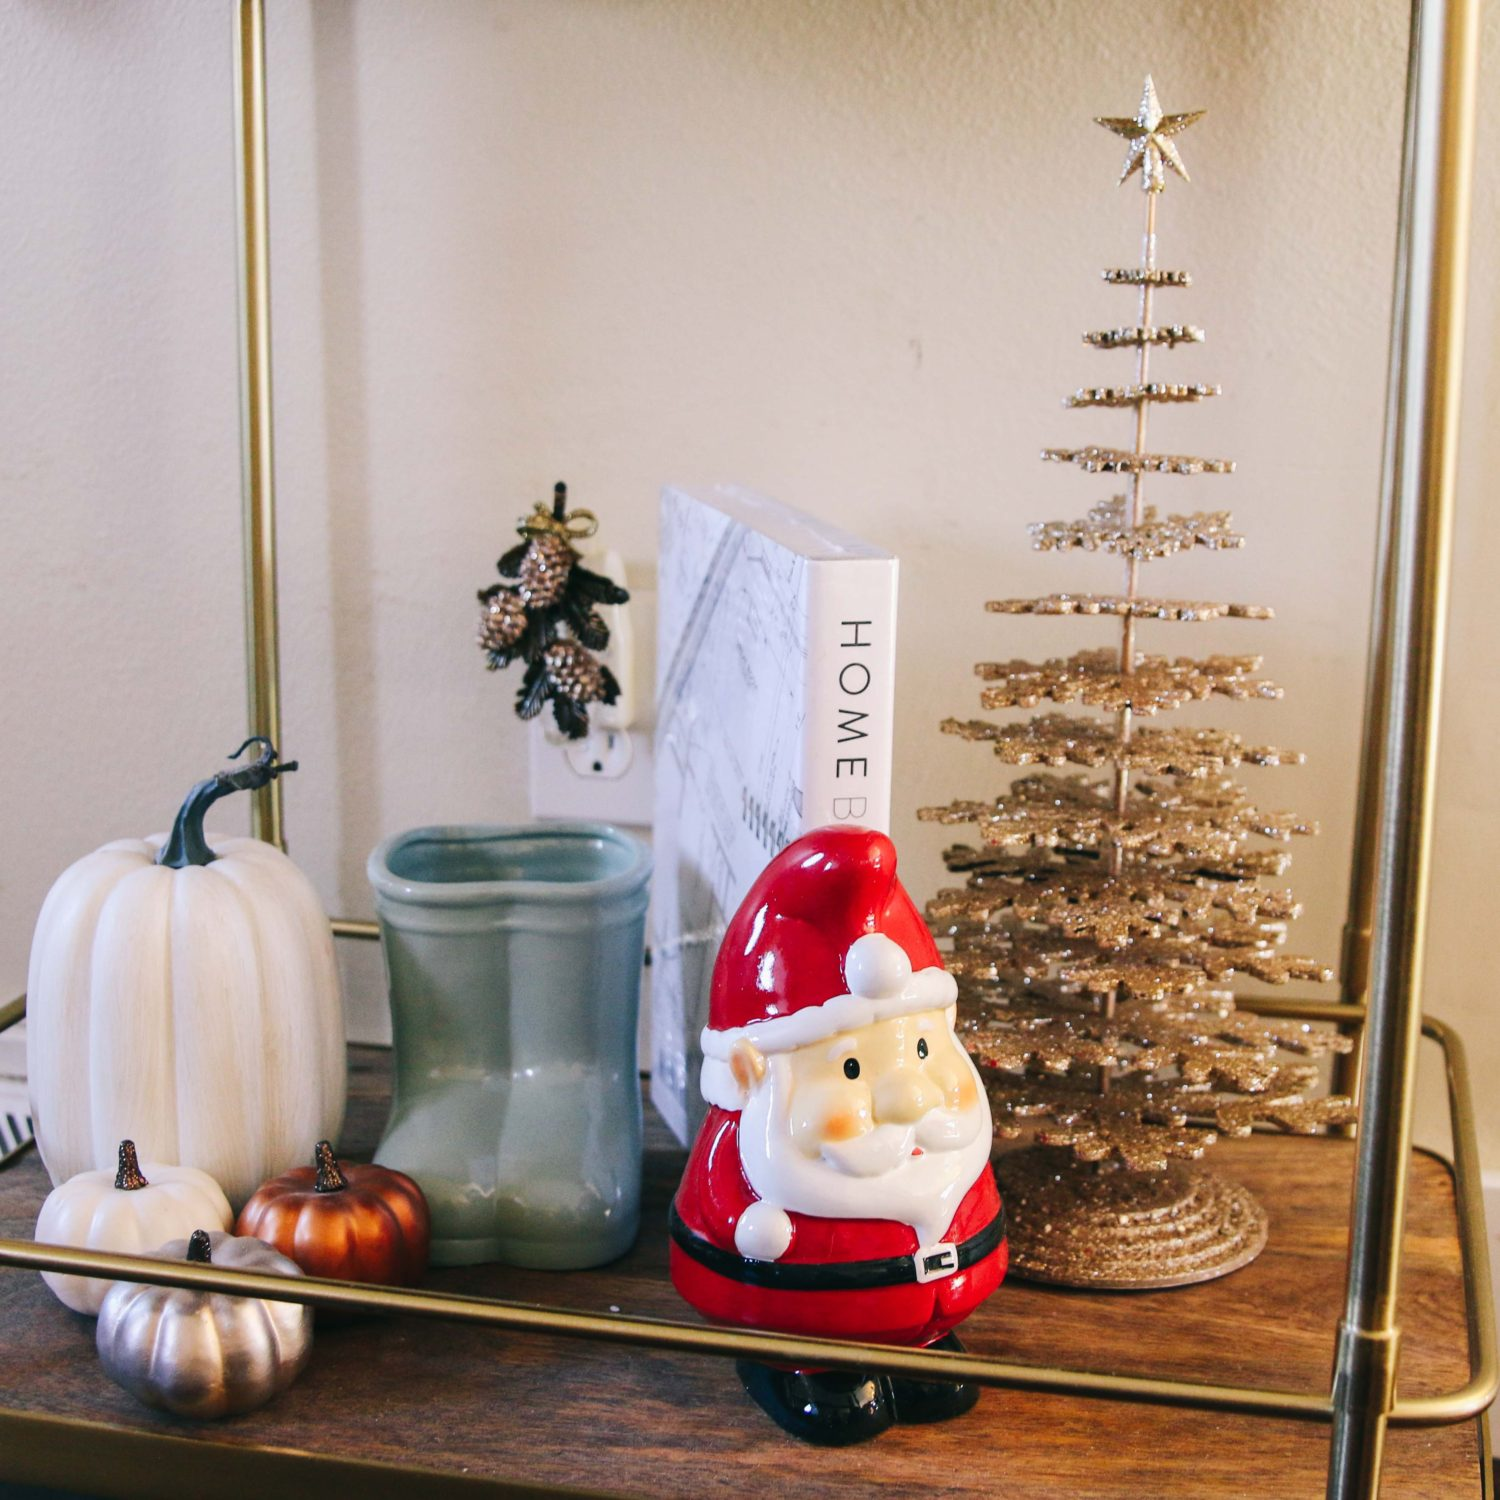 Living Room Holiday Decorations With Bed Bath Amp Beyond